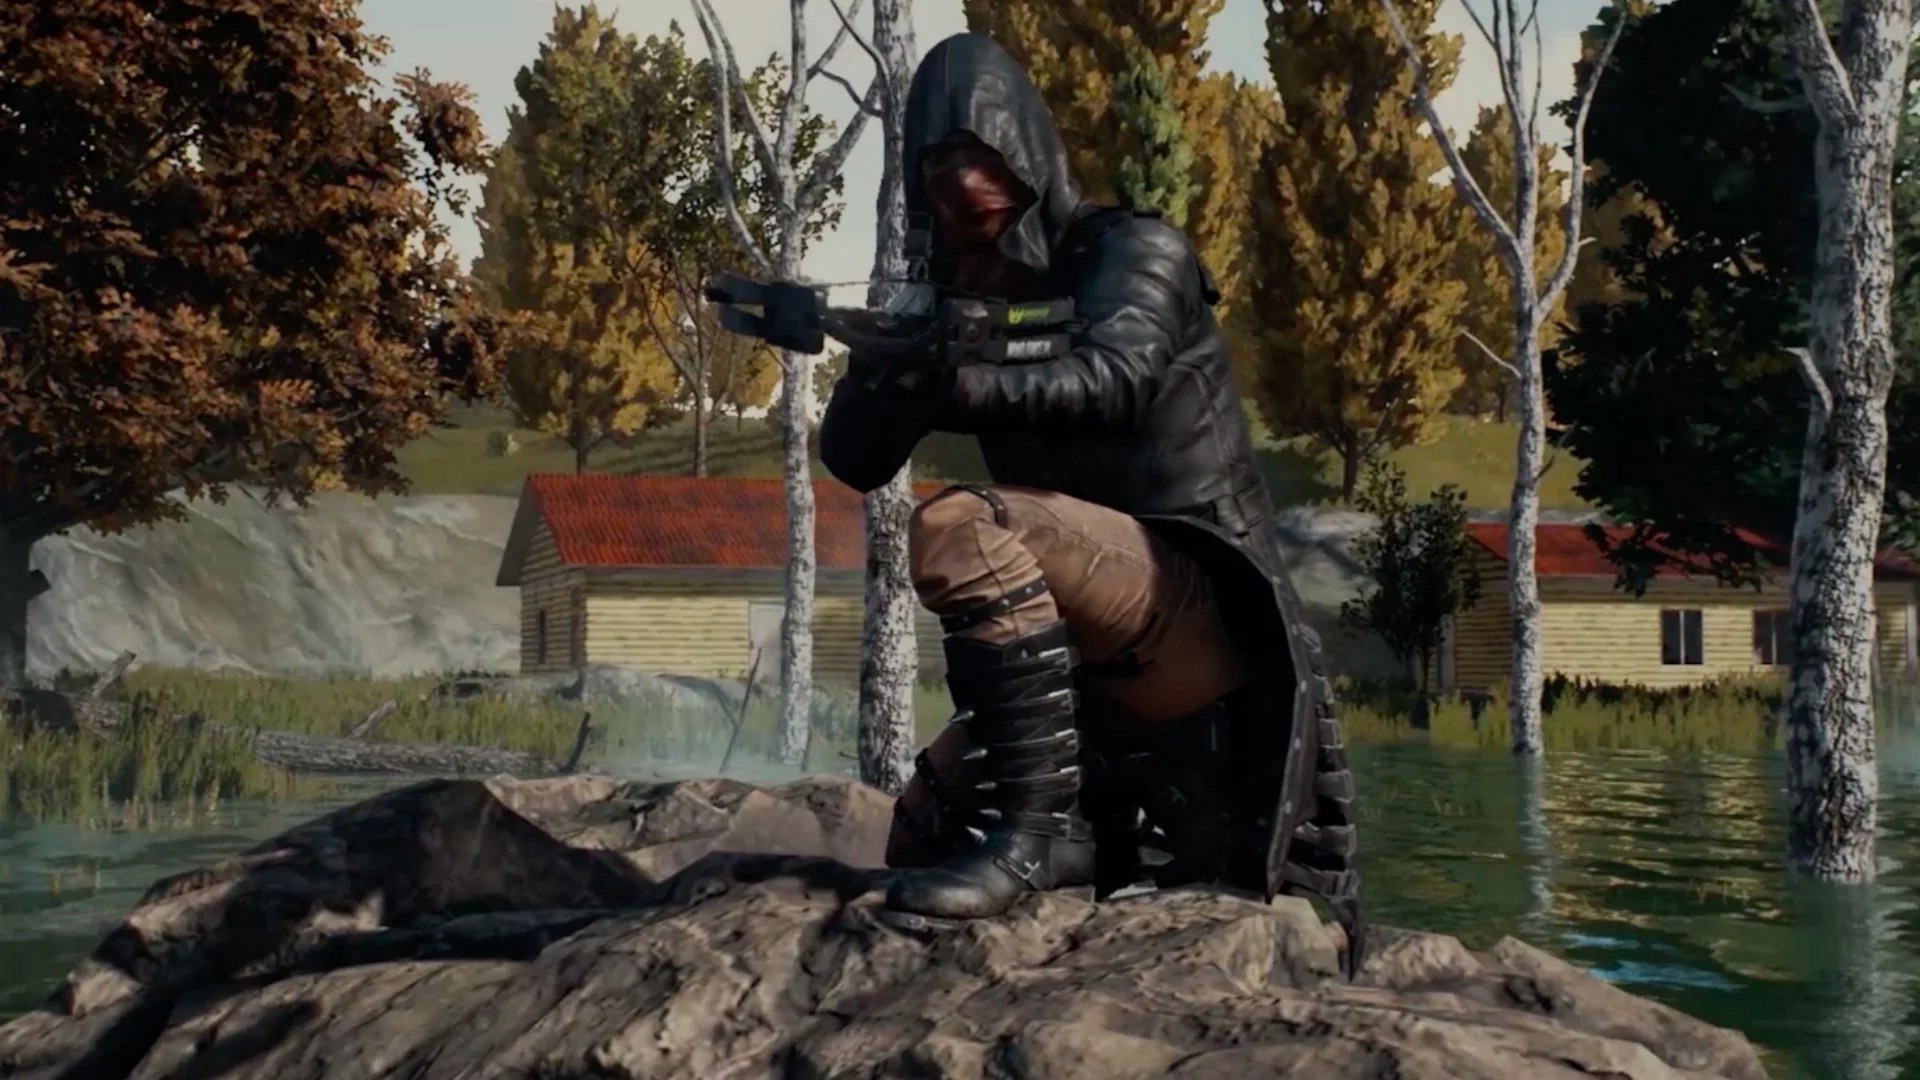 No Girl No Tension Hd Wallpaper Download Playerunknown S Battlegrounds Is The Survival Game For